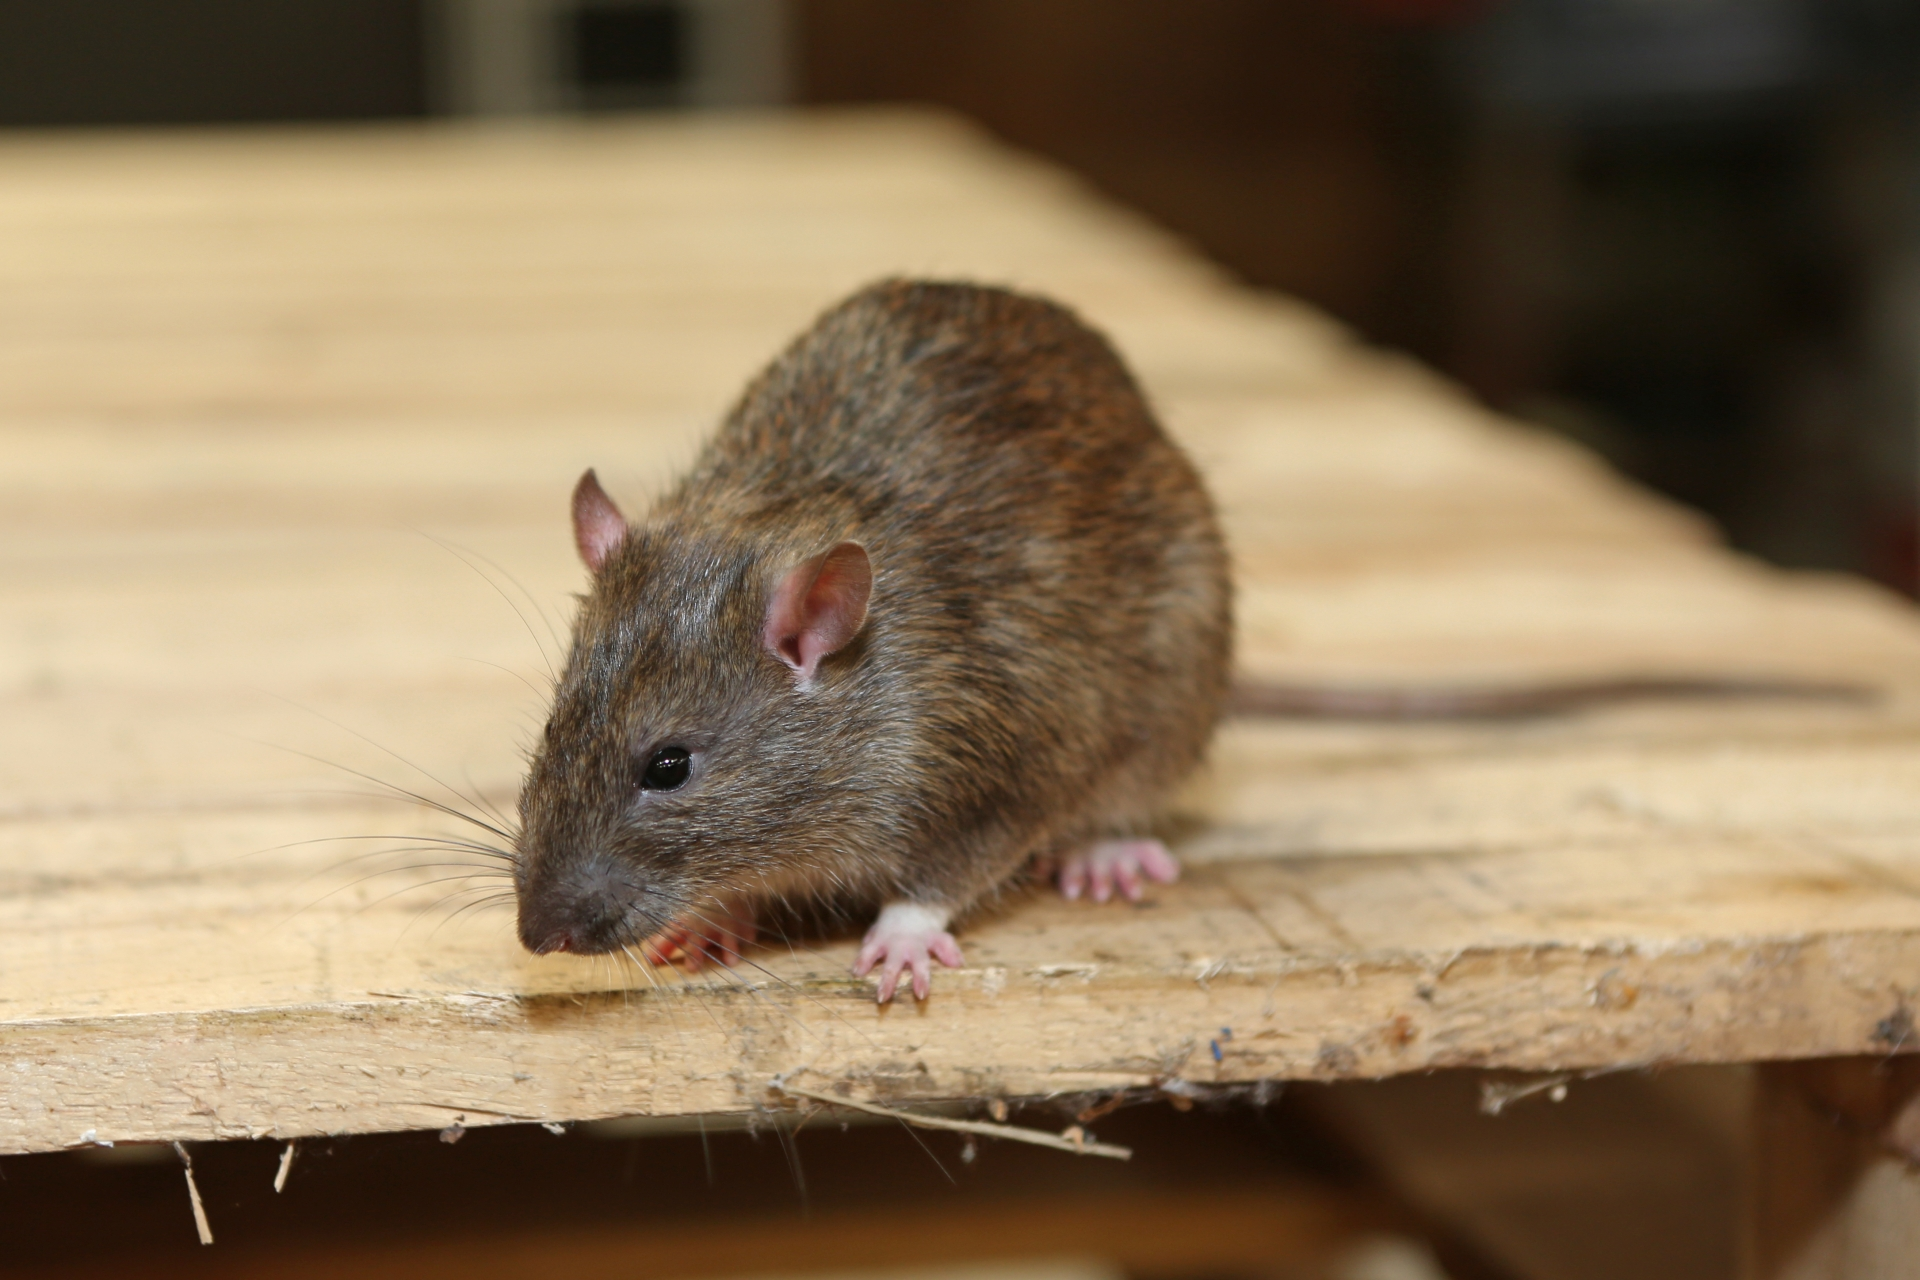 Rat extermination, Pest Control in Raynes Park, South Wimbledon, SW20. Call Now 020 8166 9746